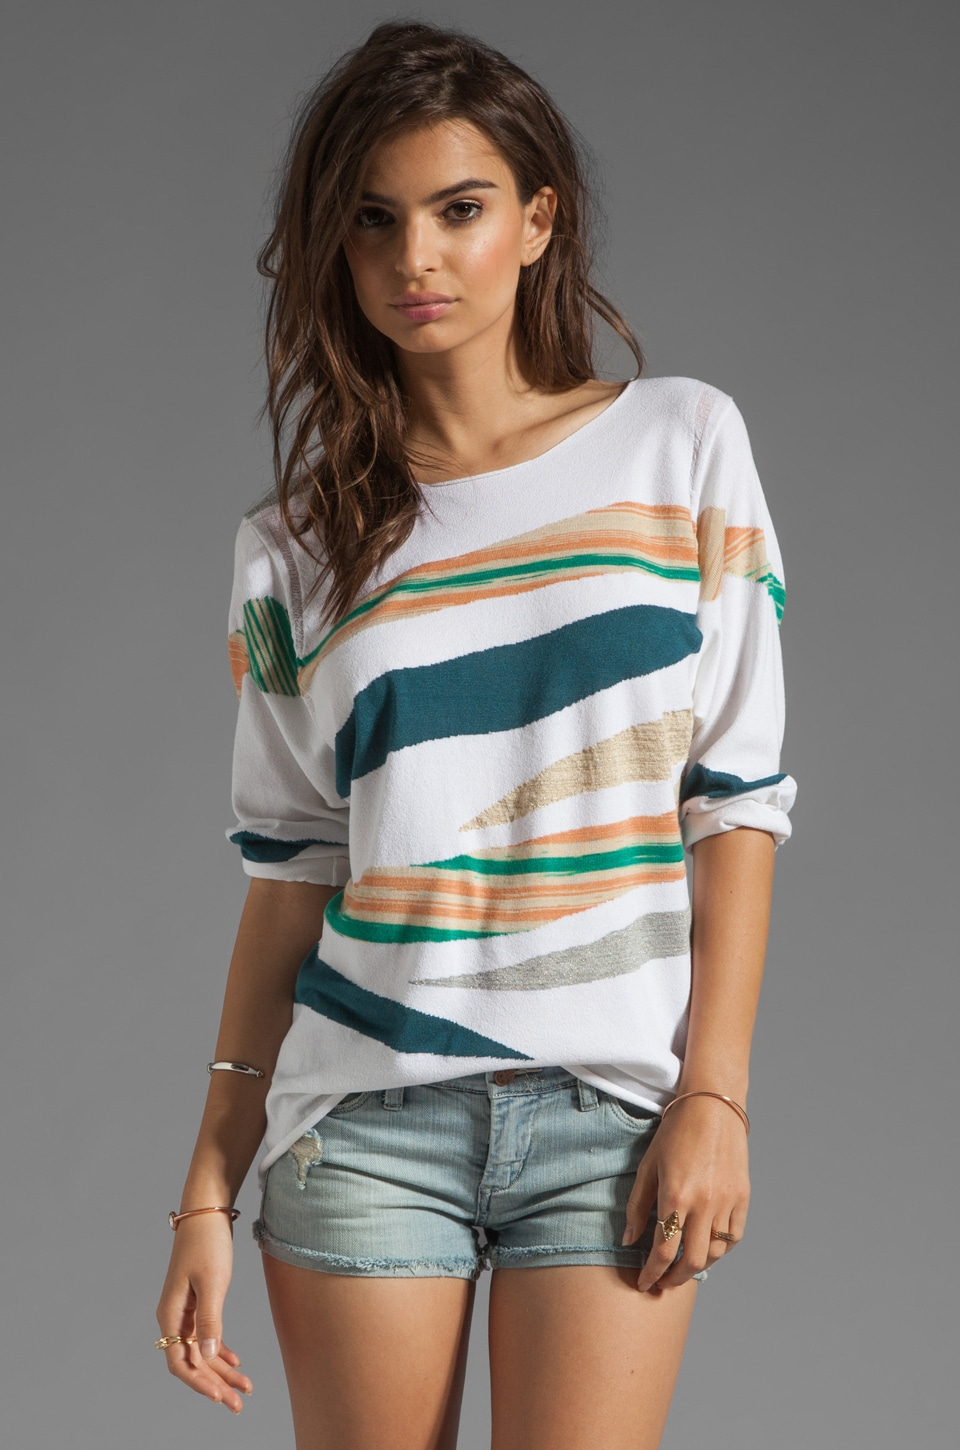 dolan Intarsia Sweater in Sea